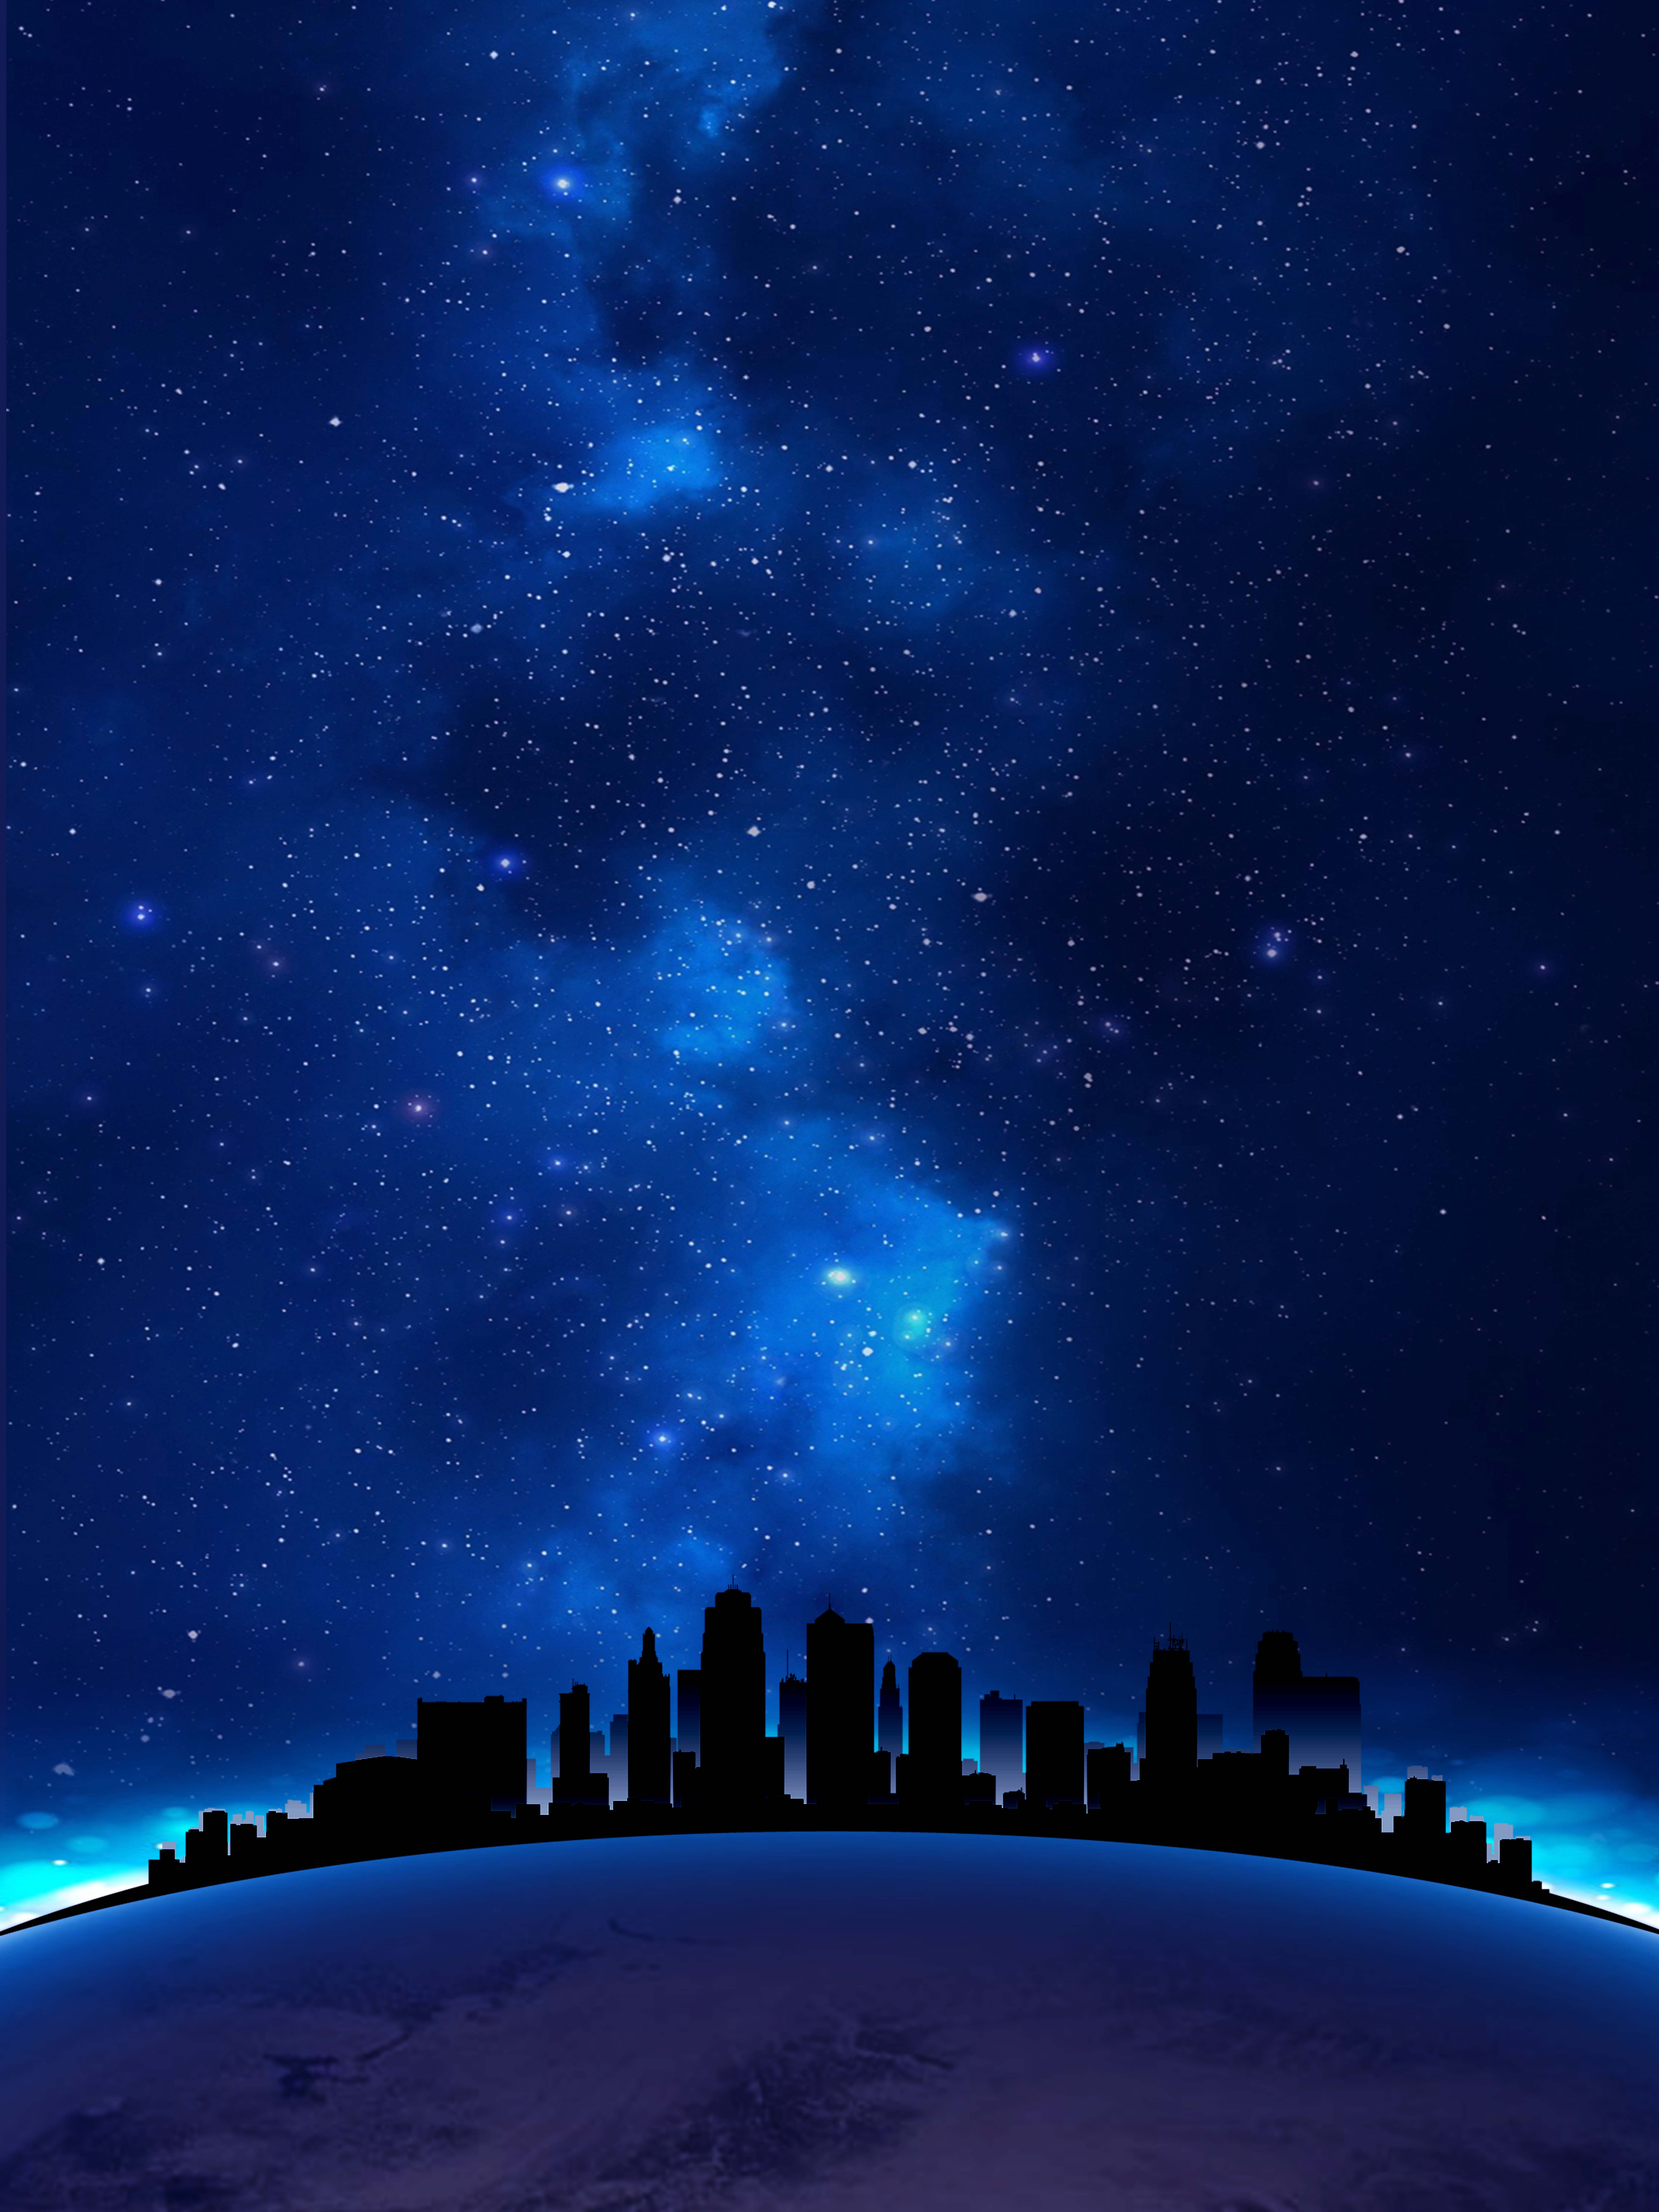 City Night Scene Star Poster Design Blue Starry Sky Background Image for Free Download